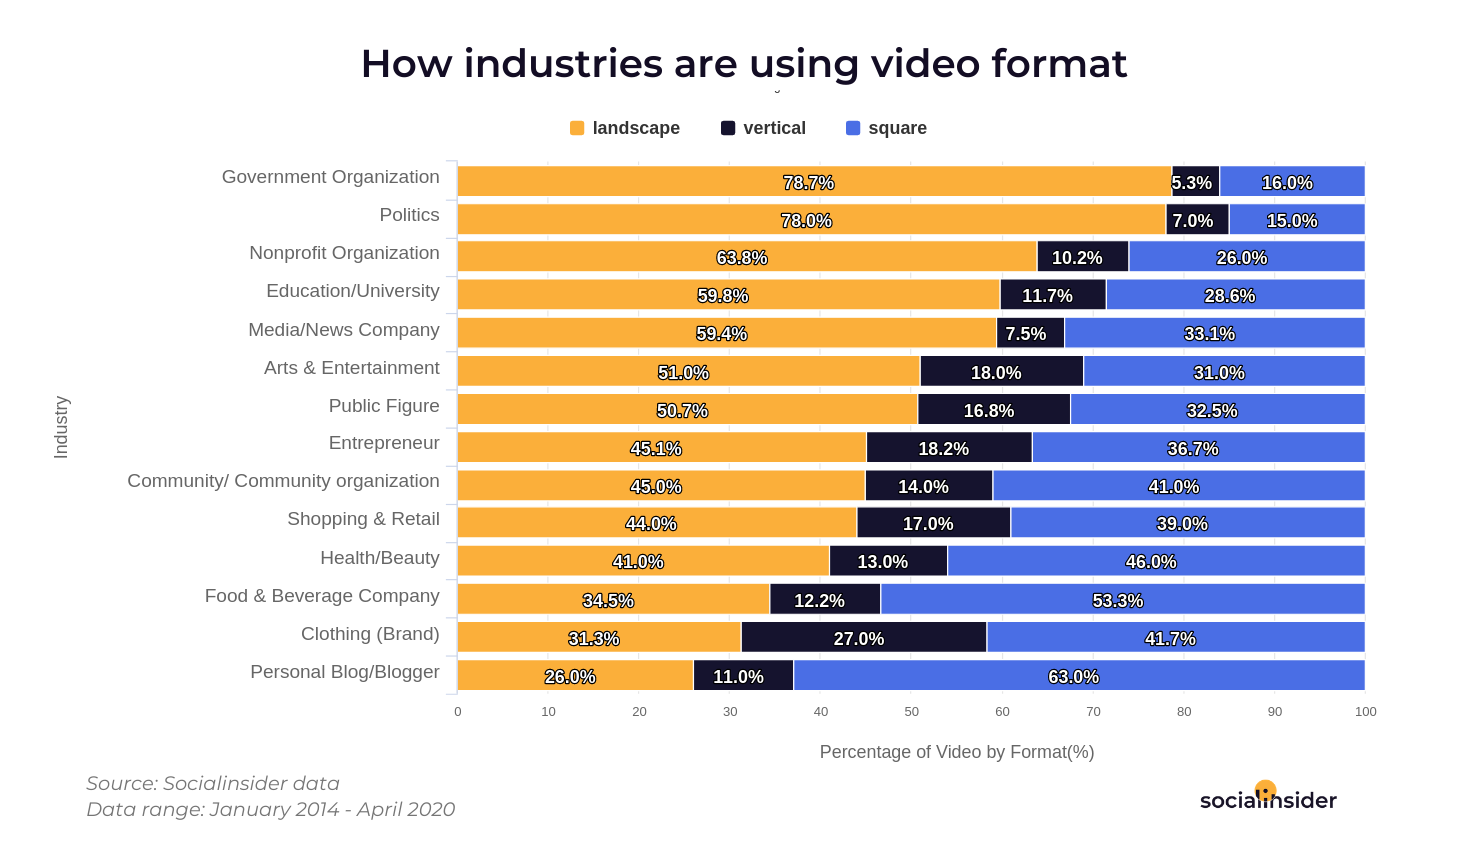 Industries using video formats.